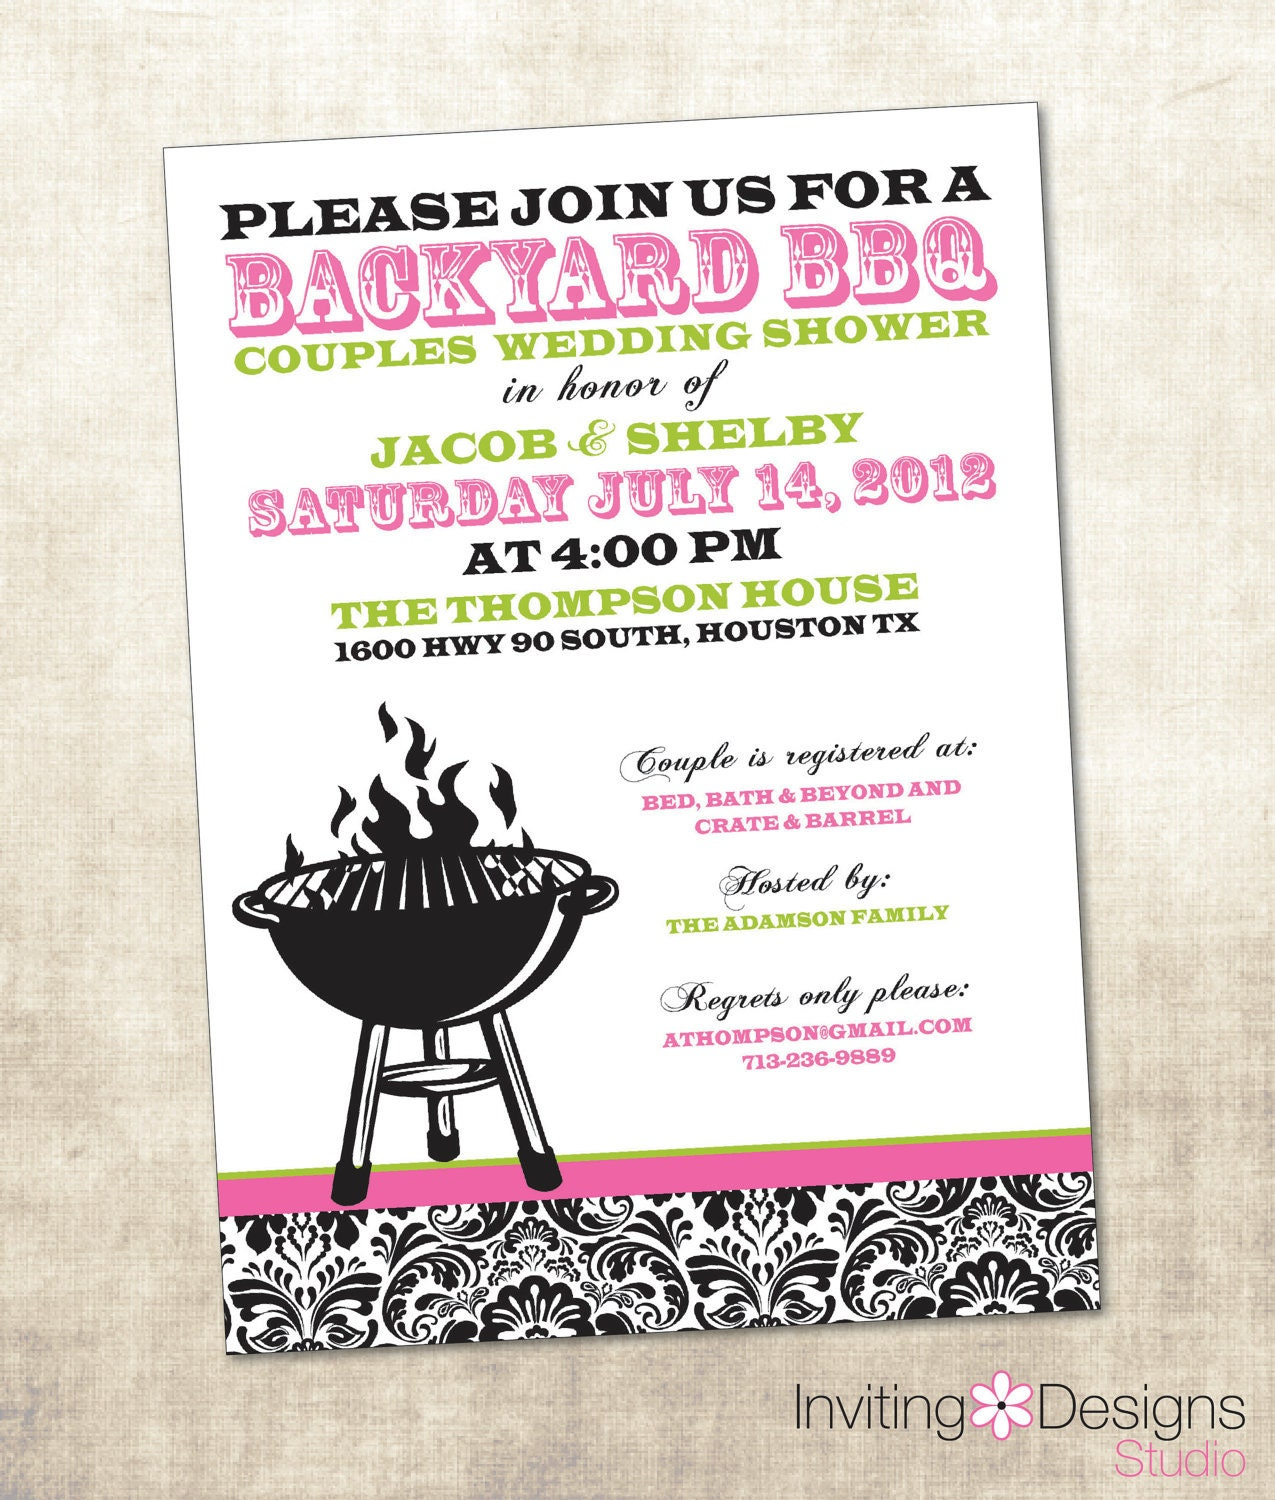 bbq wedding shower invitation couples shower invitation With couples shower wedding invitations